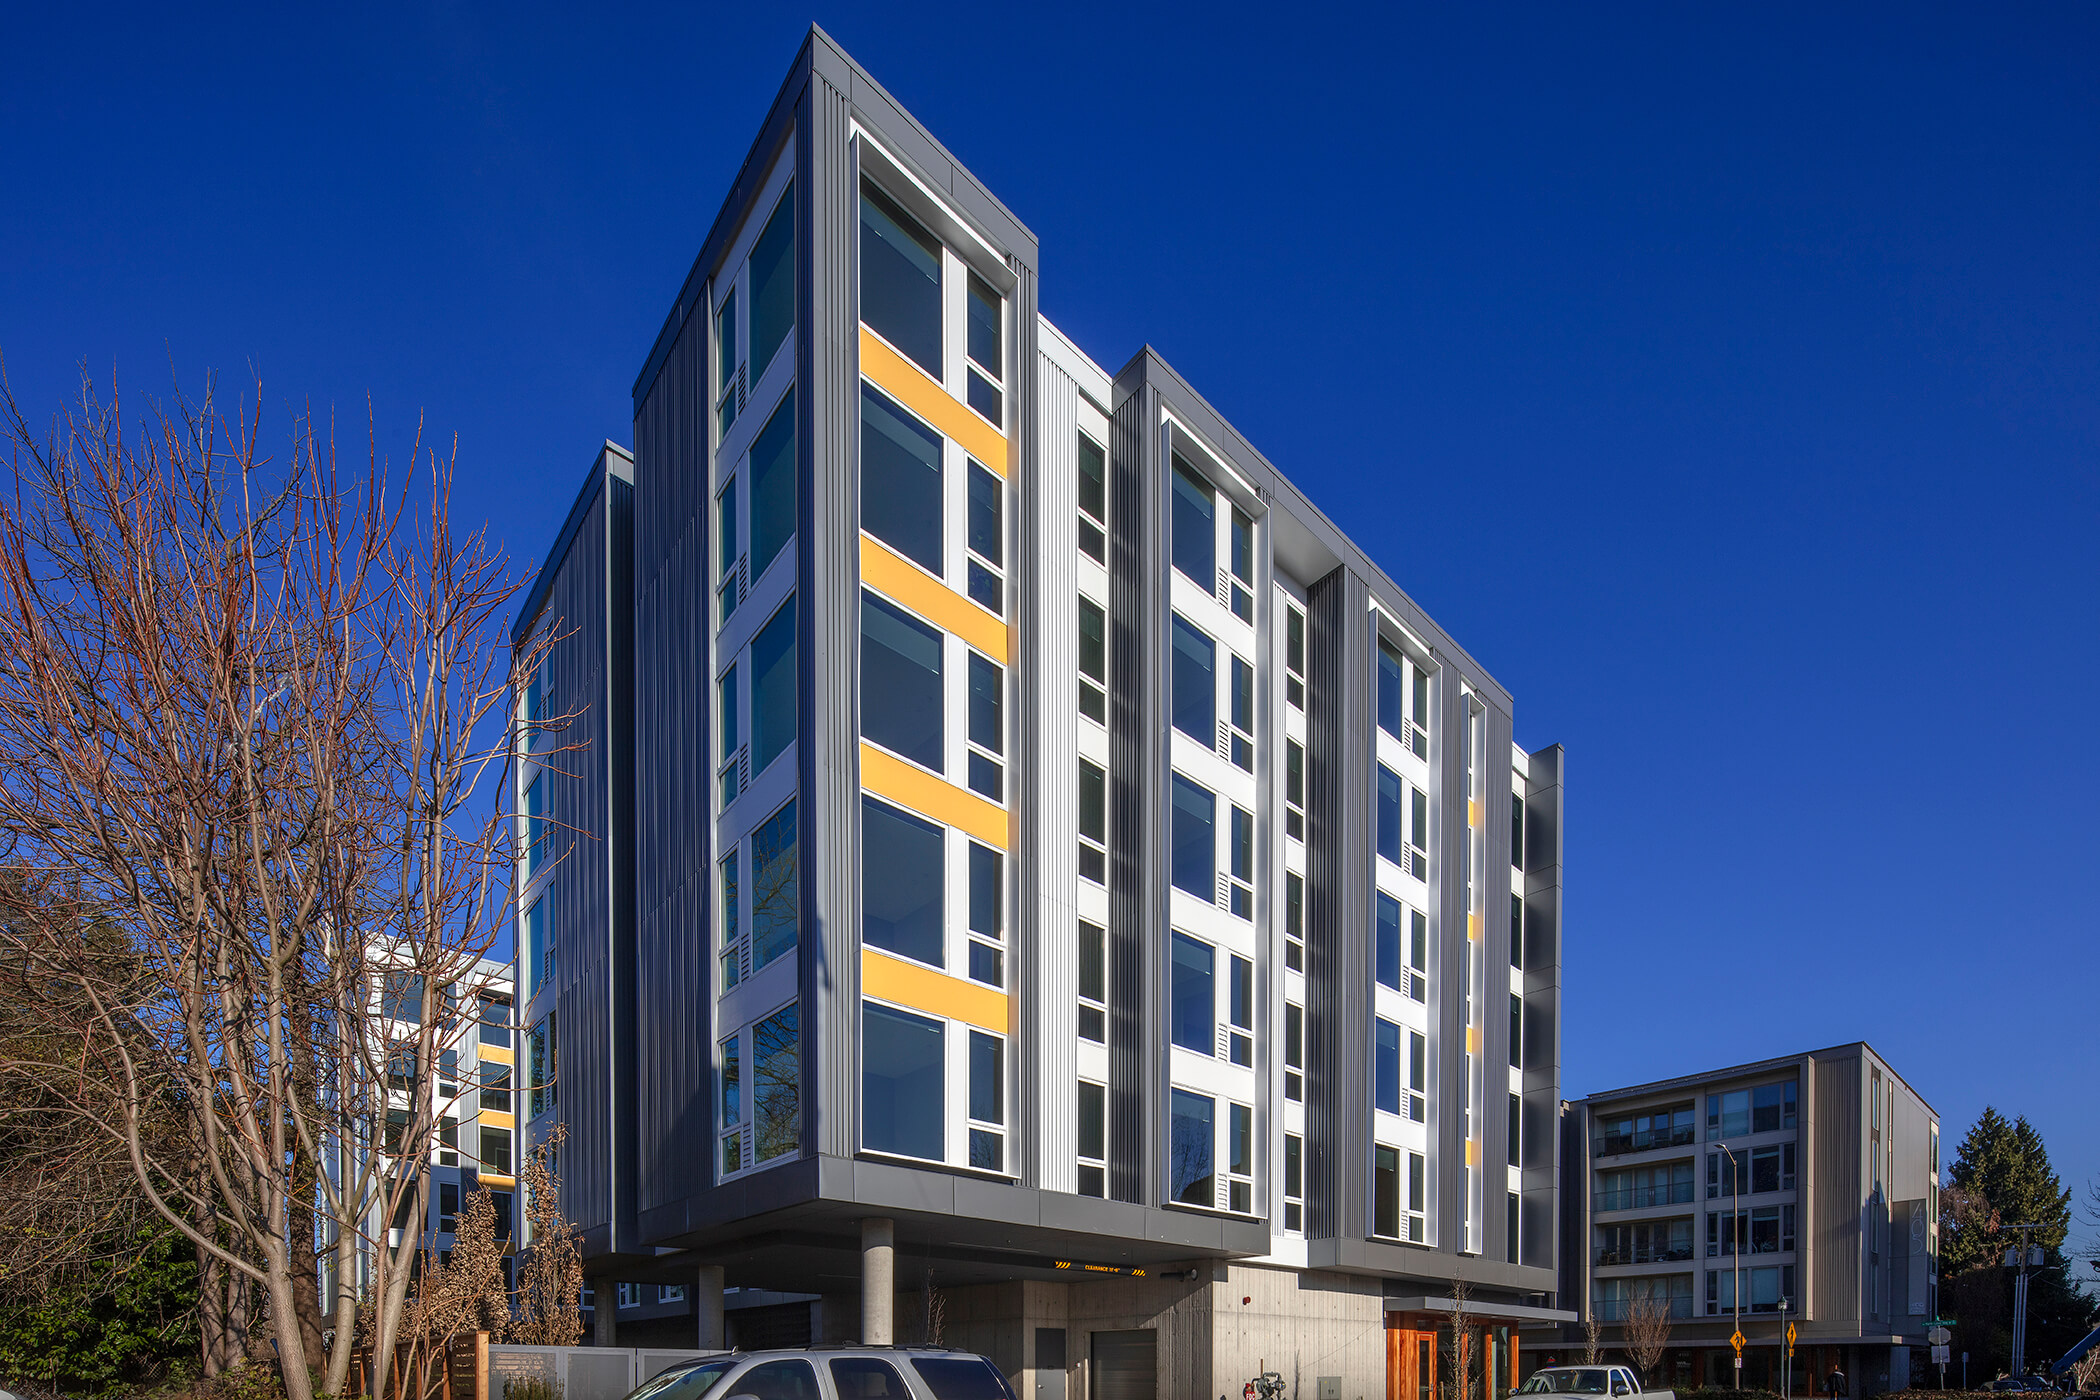 MLK Forty One 11 exterior